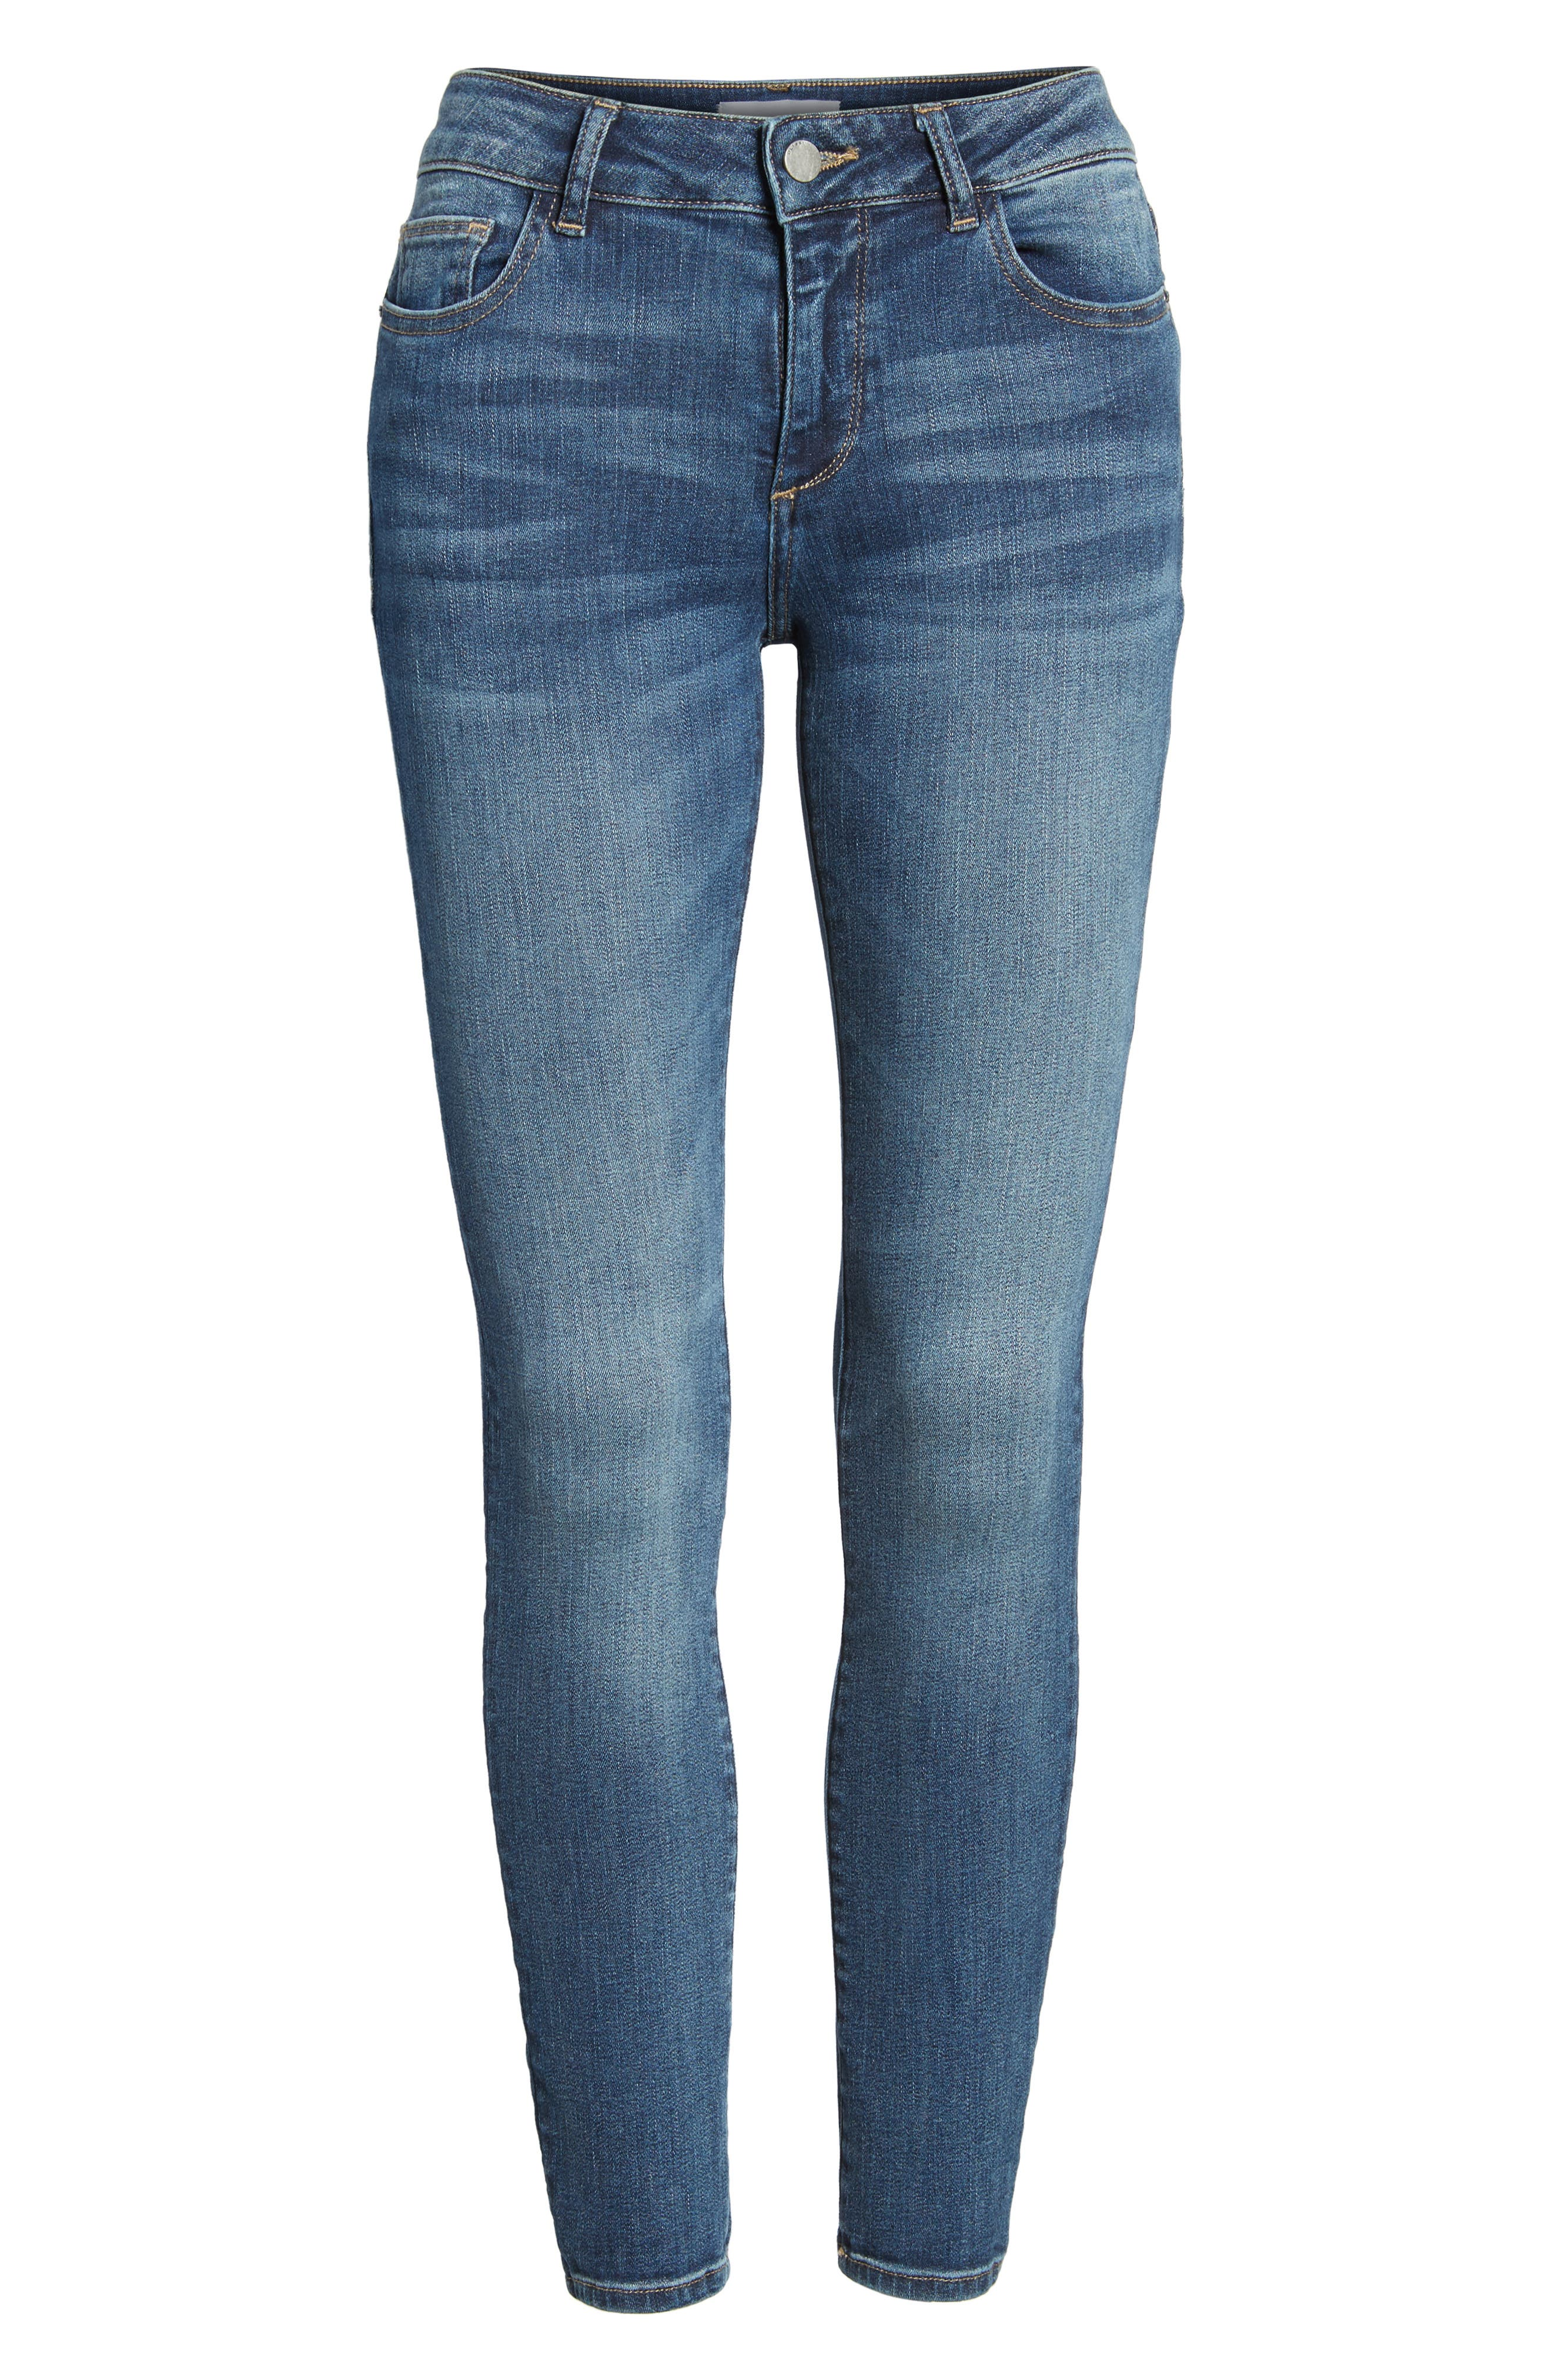 Margaux Instasculpt Ankle Skinny Jeans,                             Alternate thumbnail 7, color,                             425